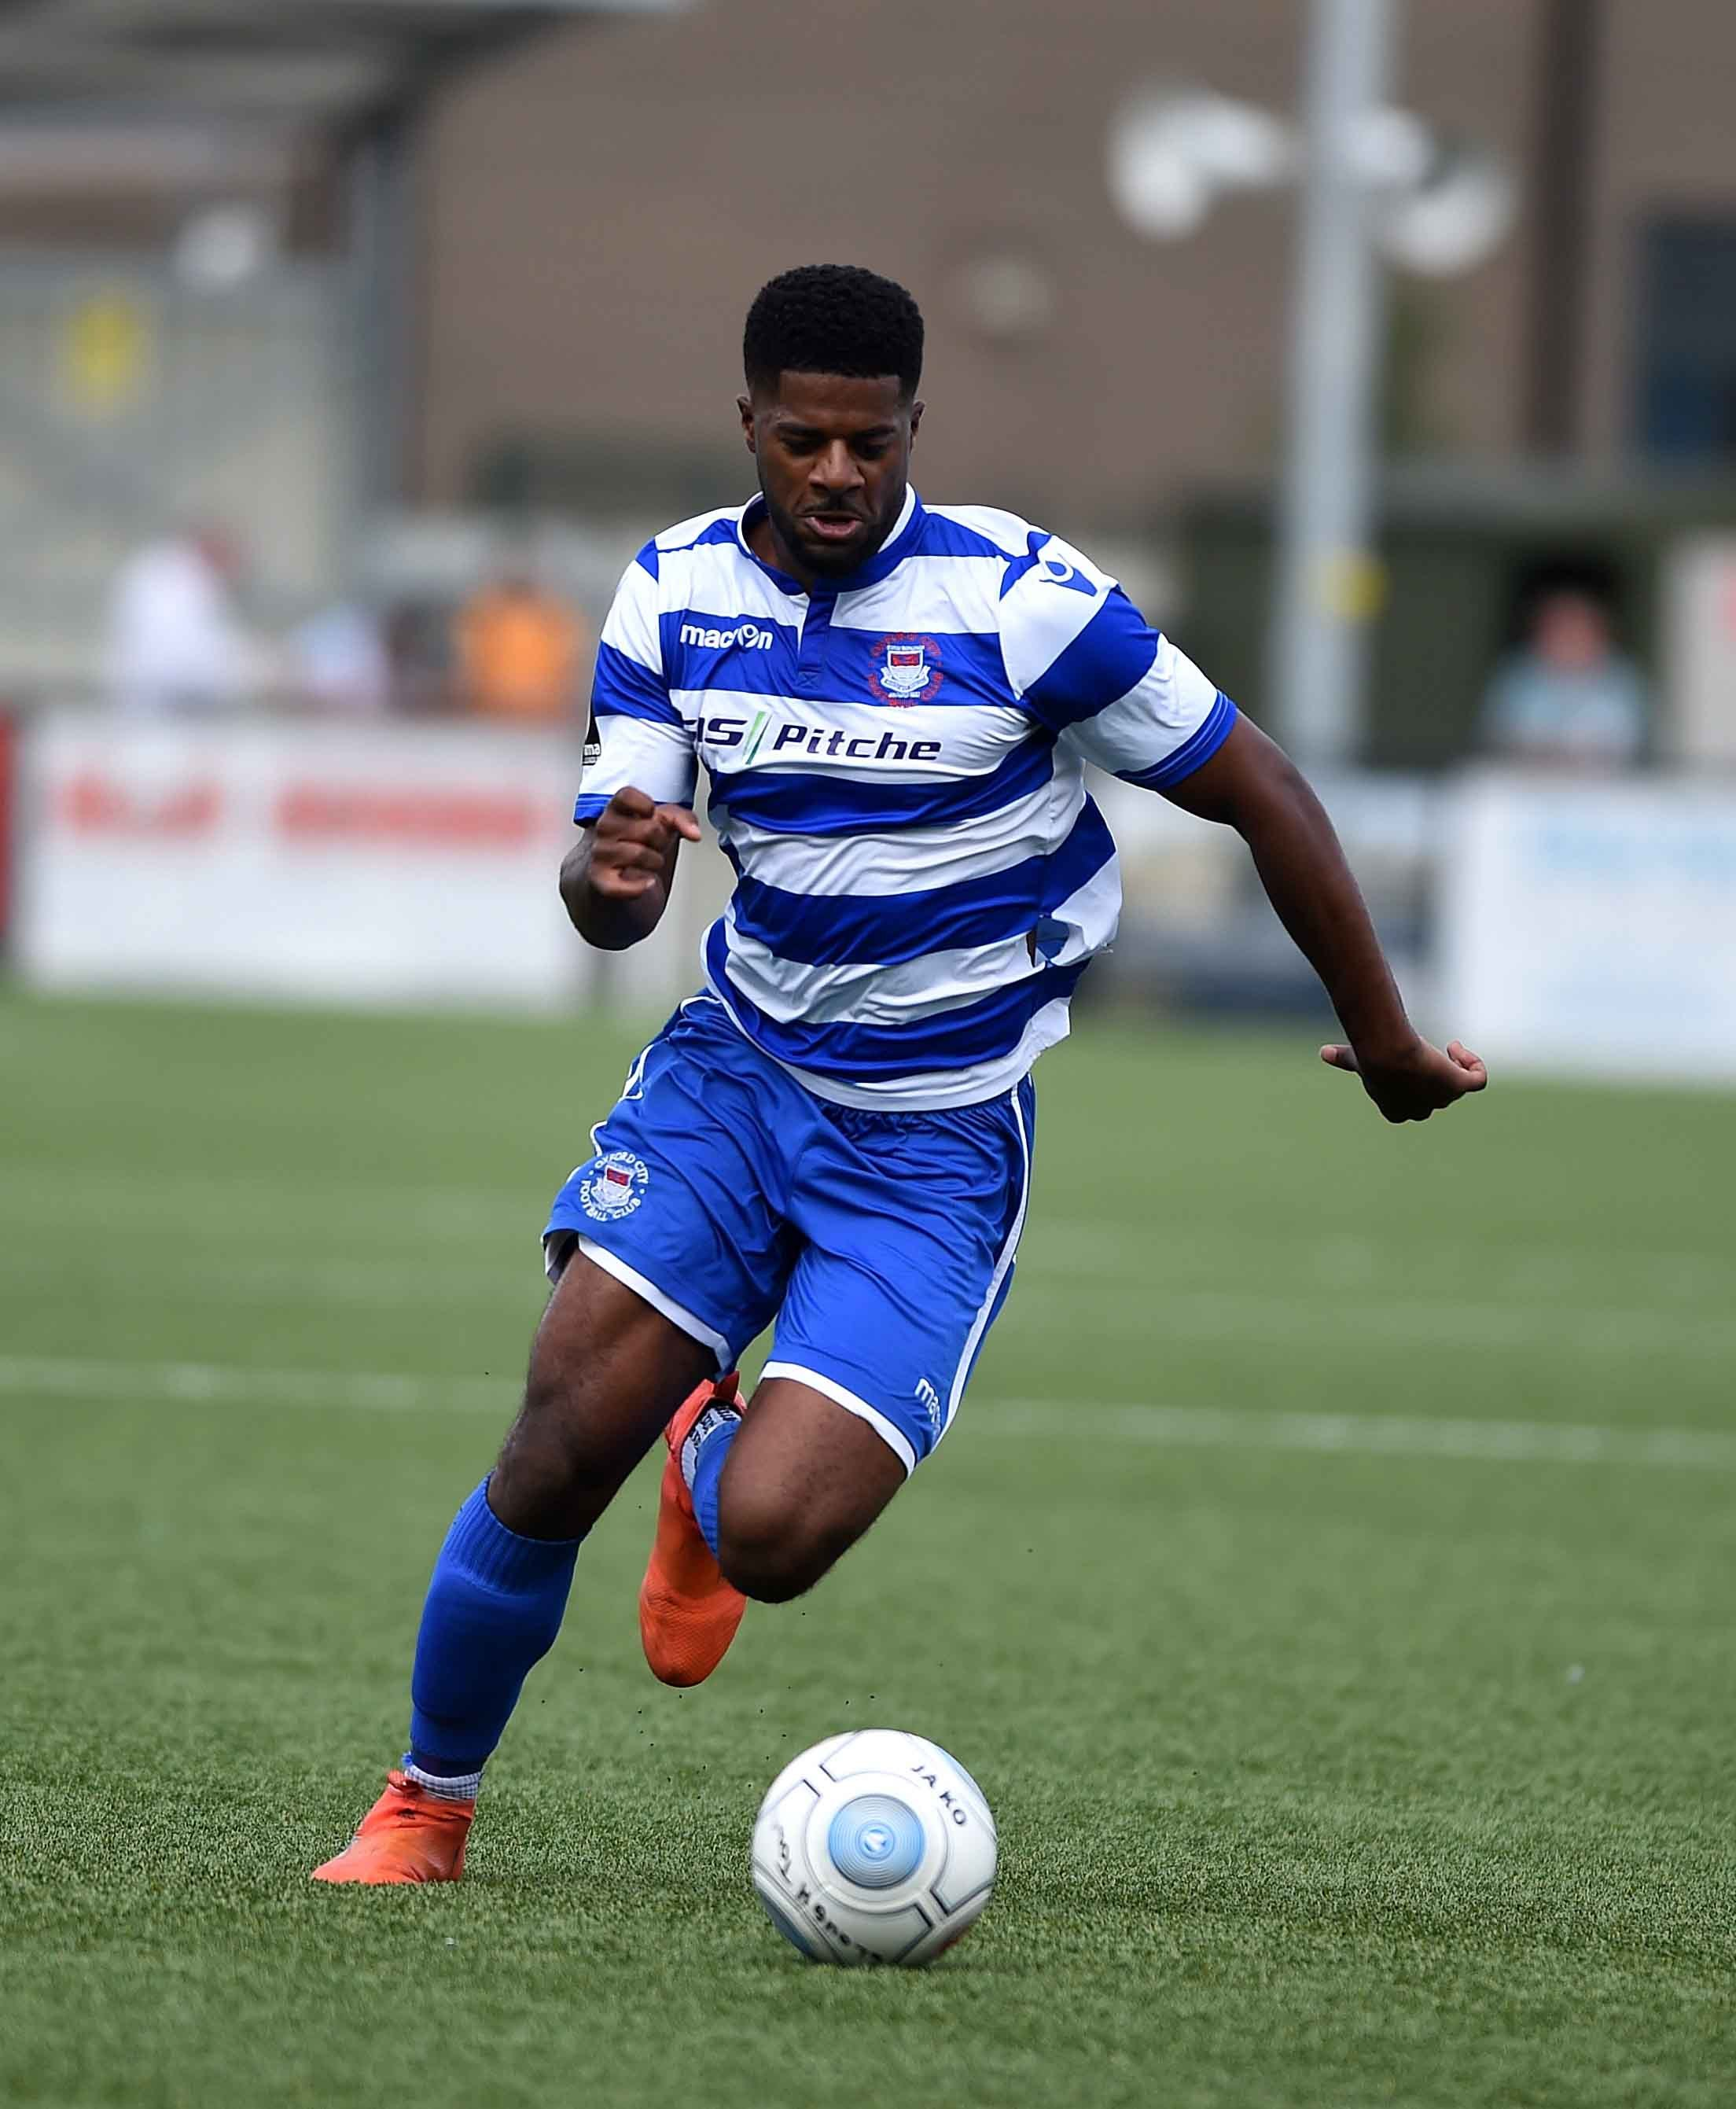 Kyran Wiltshire is back from suspension for Oxford City Picture: Mike Allen